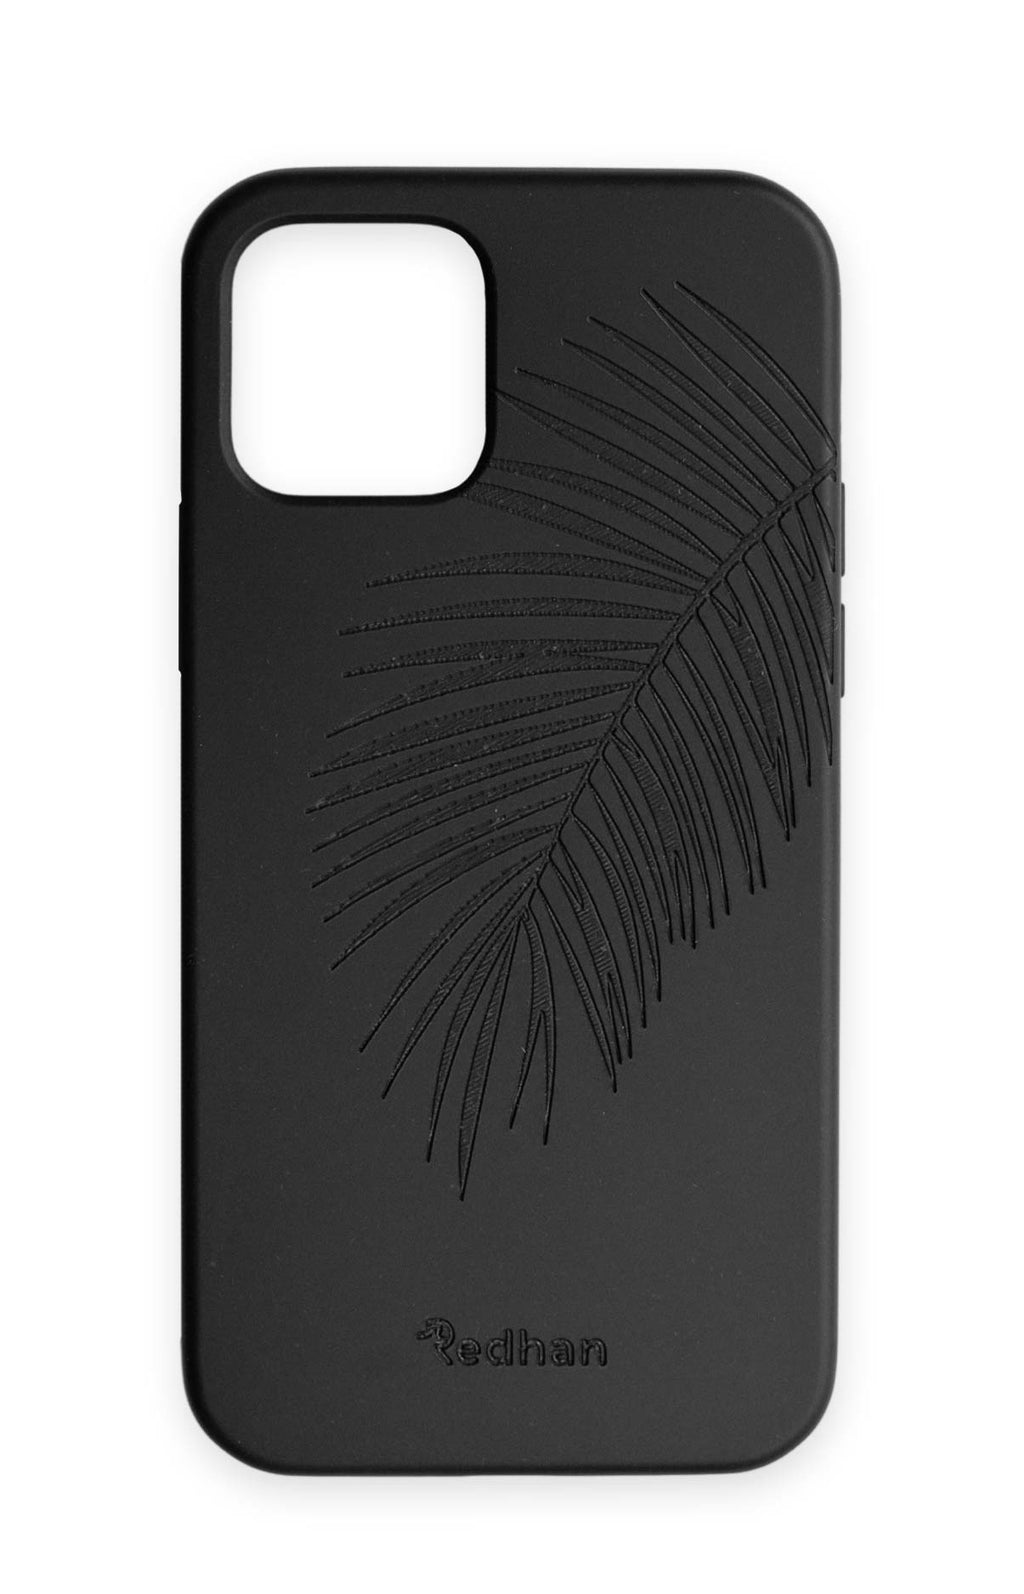 Eco-Friendly Phone Case Black, iPhone 12 Mini Phone case in Black